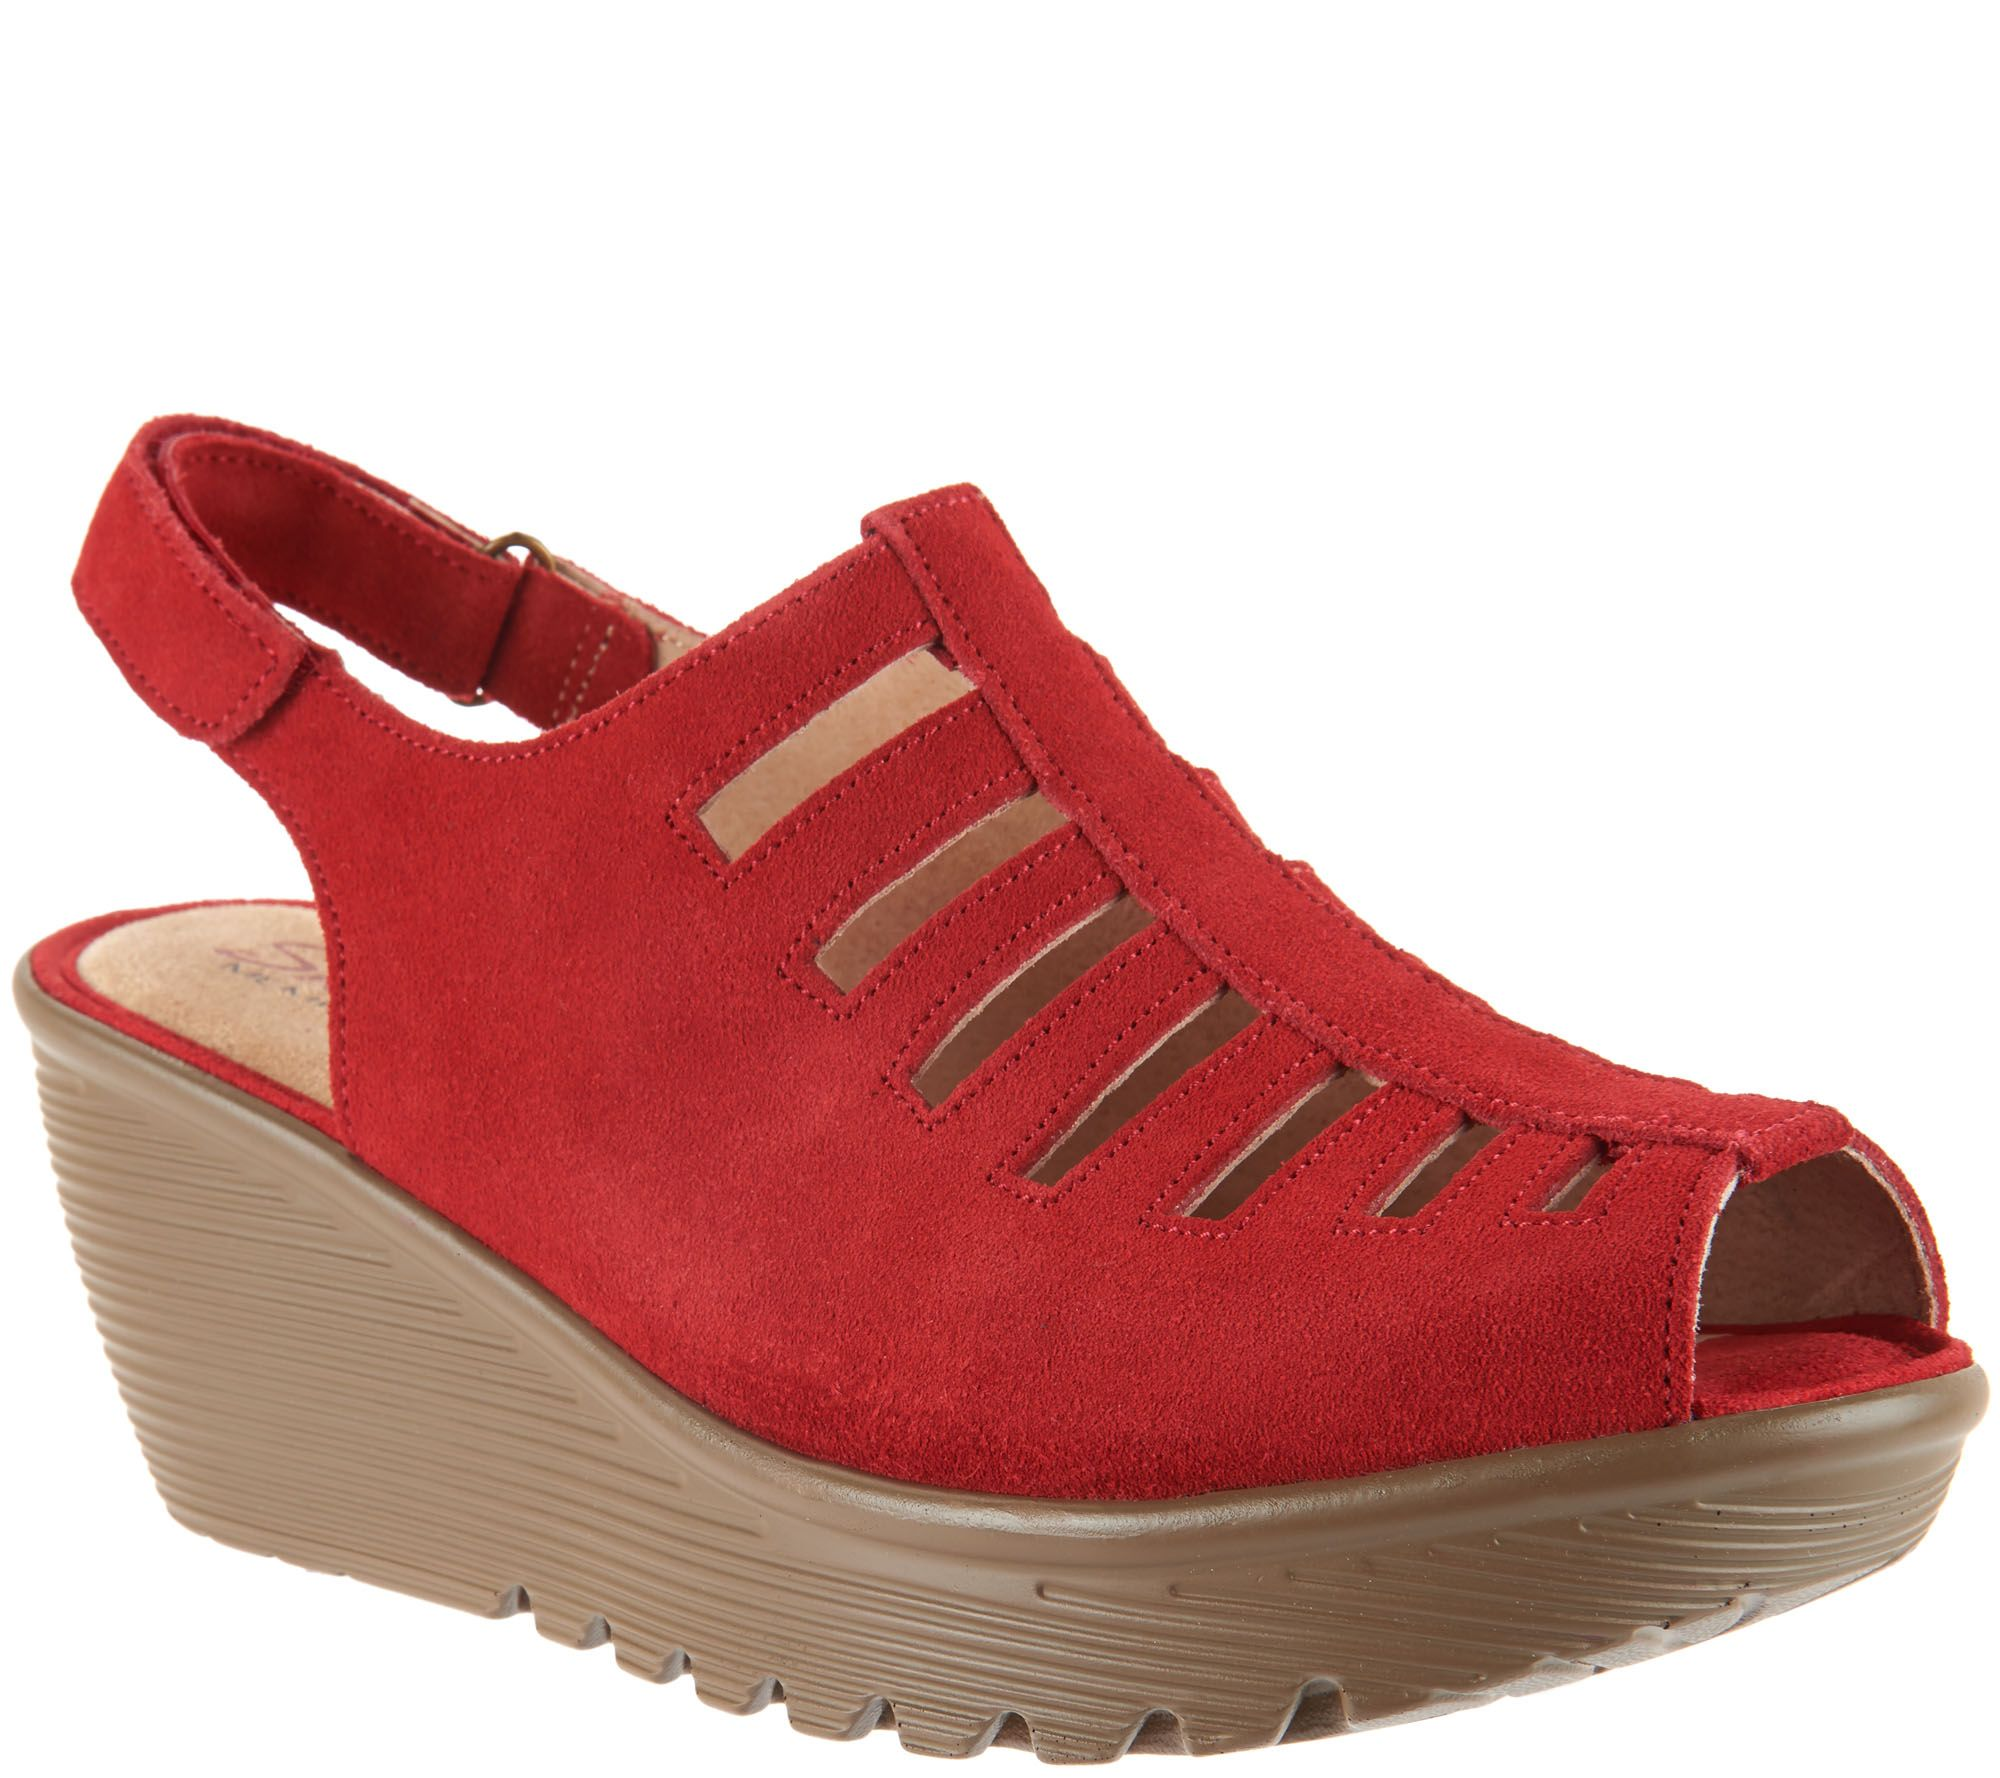 best store to get cheap online Skechers Suede Peep-toe Sling-back Wedges - Trapezoid 2014 newest for sale clearance original free shipping cost discount 100% original i1I9fS